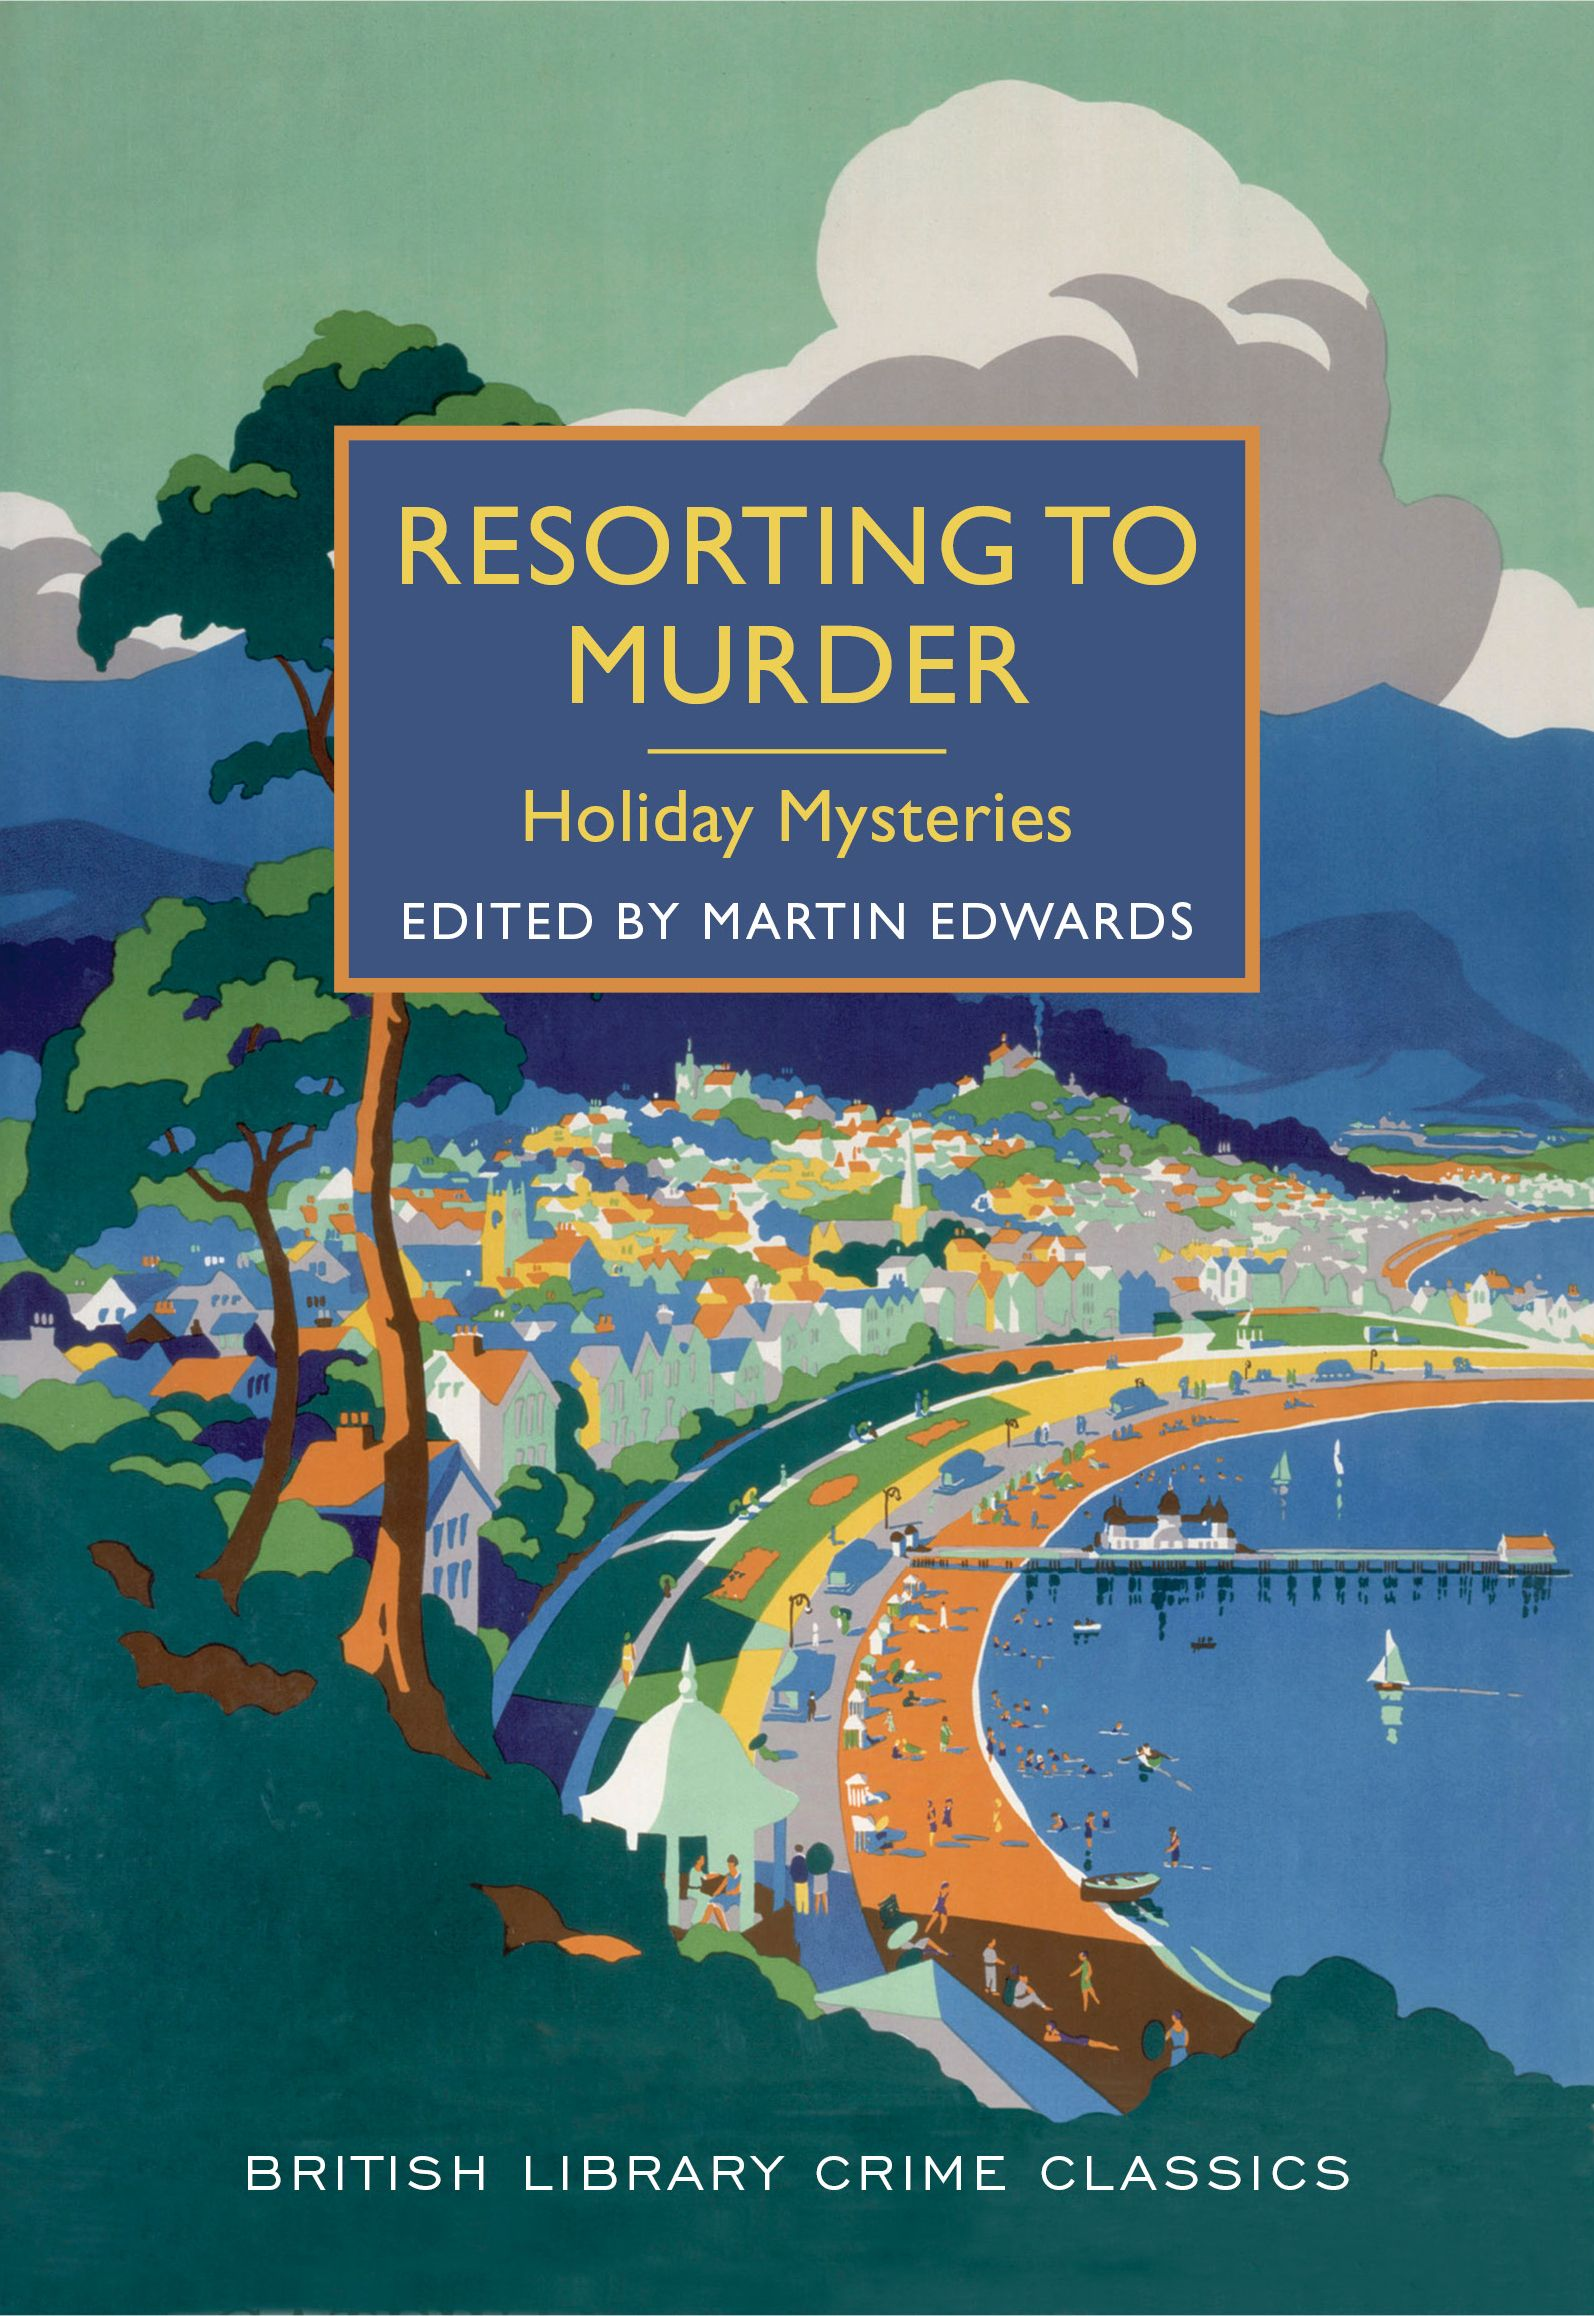 Resorting To Murder: Holiday Mysteries: A British Library Crime Classic  Editor: Martin Edwards